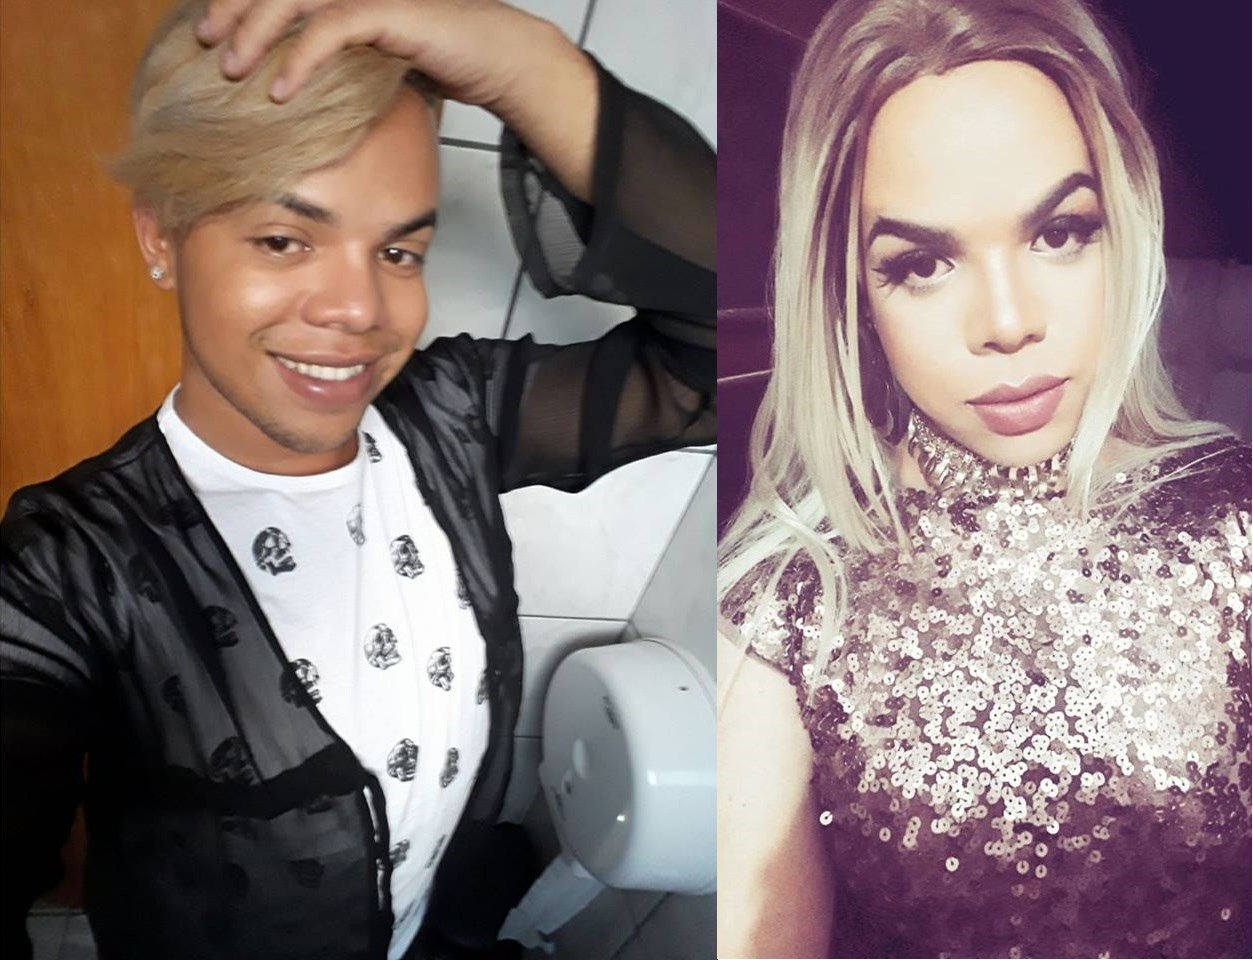 Camila Rodrigues Travesti remembering our dead - reports - tdor 2018